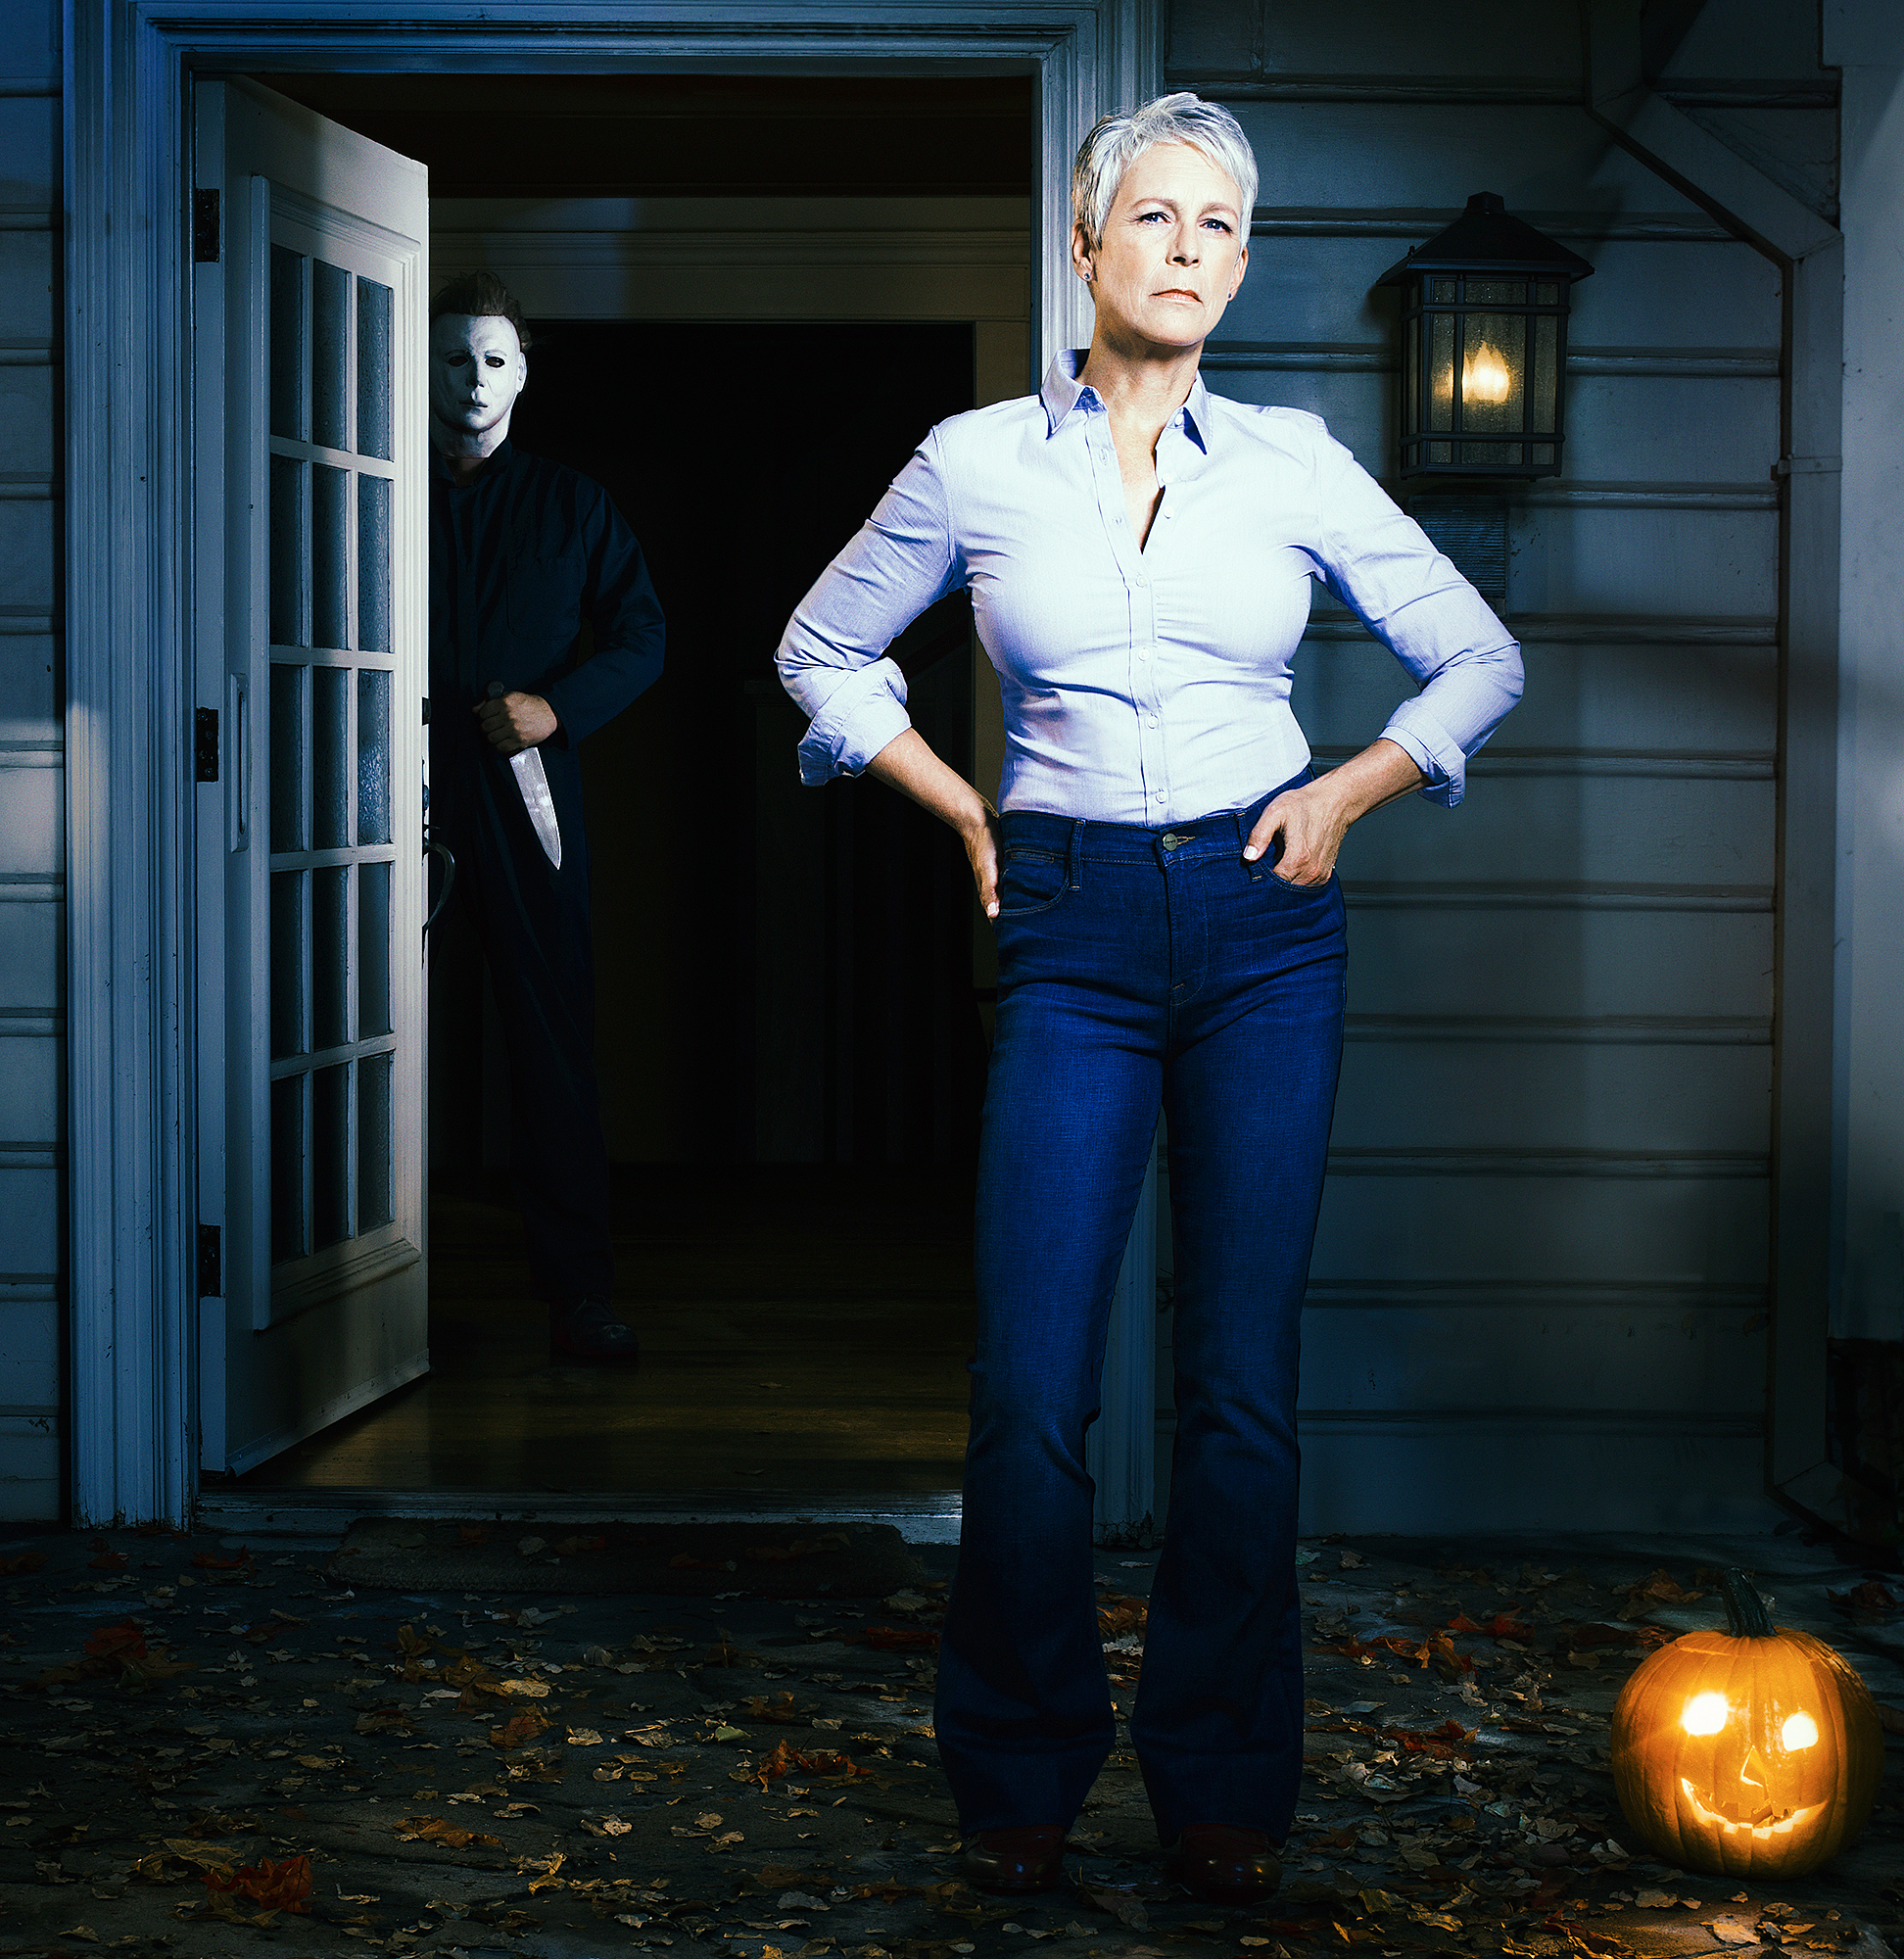 Netflix has revealed a first look at 27 of the new original movies it's lined up for 2021. 'Halloween' Franchise Announces 2020, 2021 Sequels: 'Kills,' 'Ends'